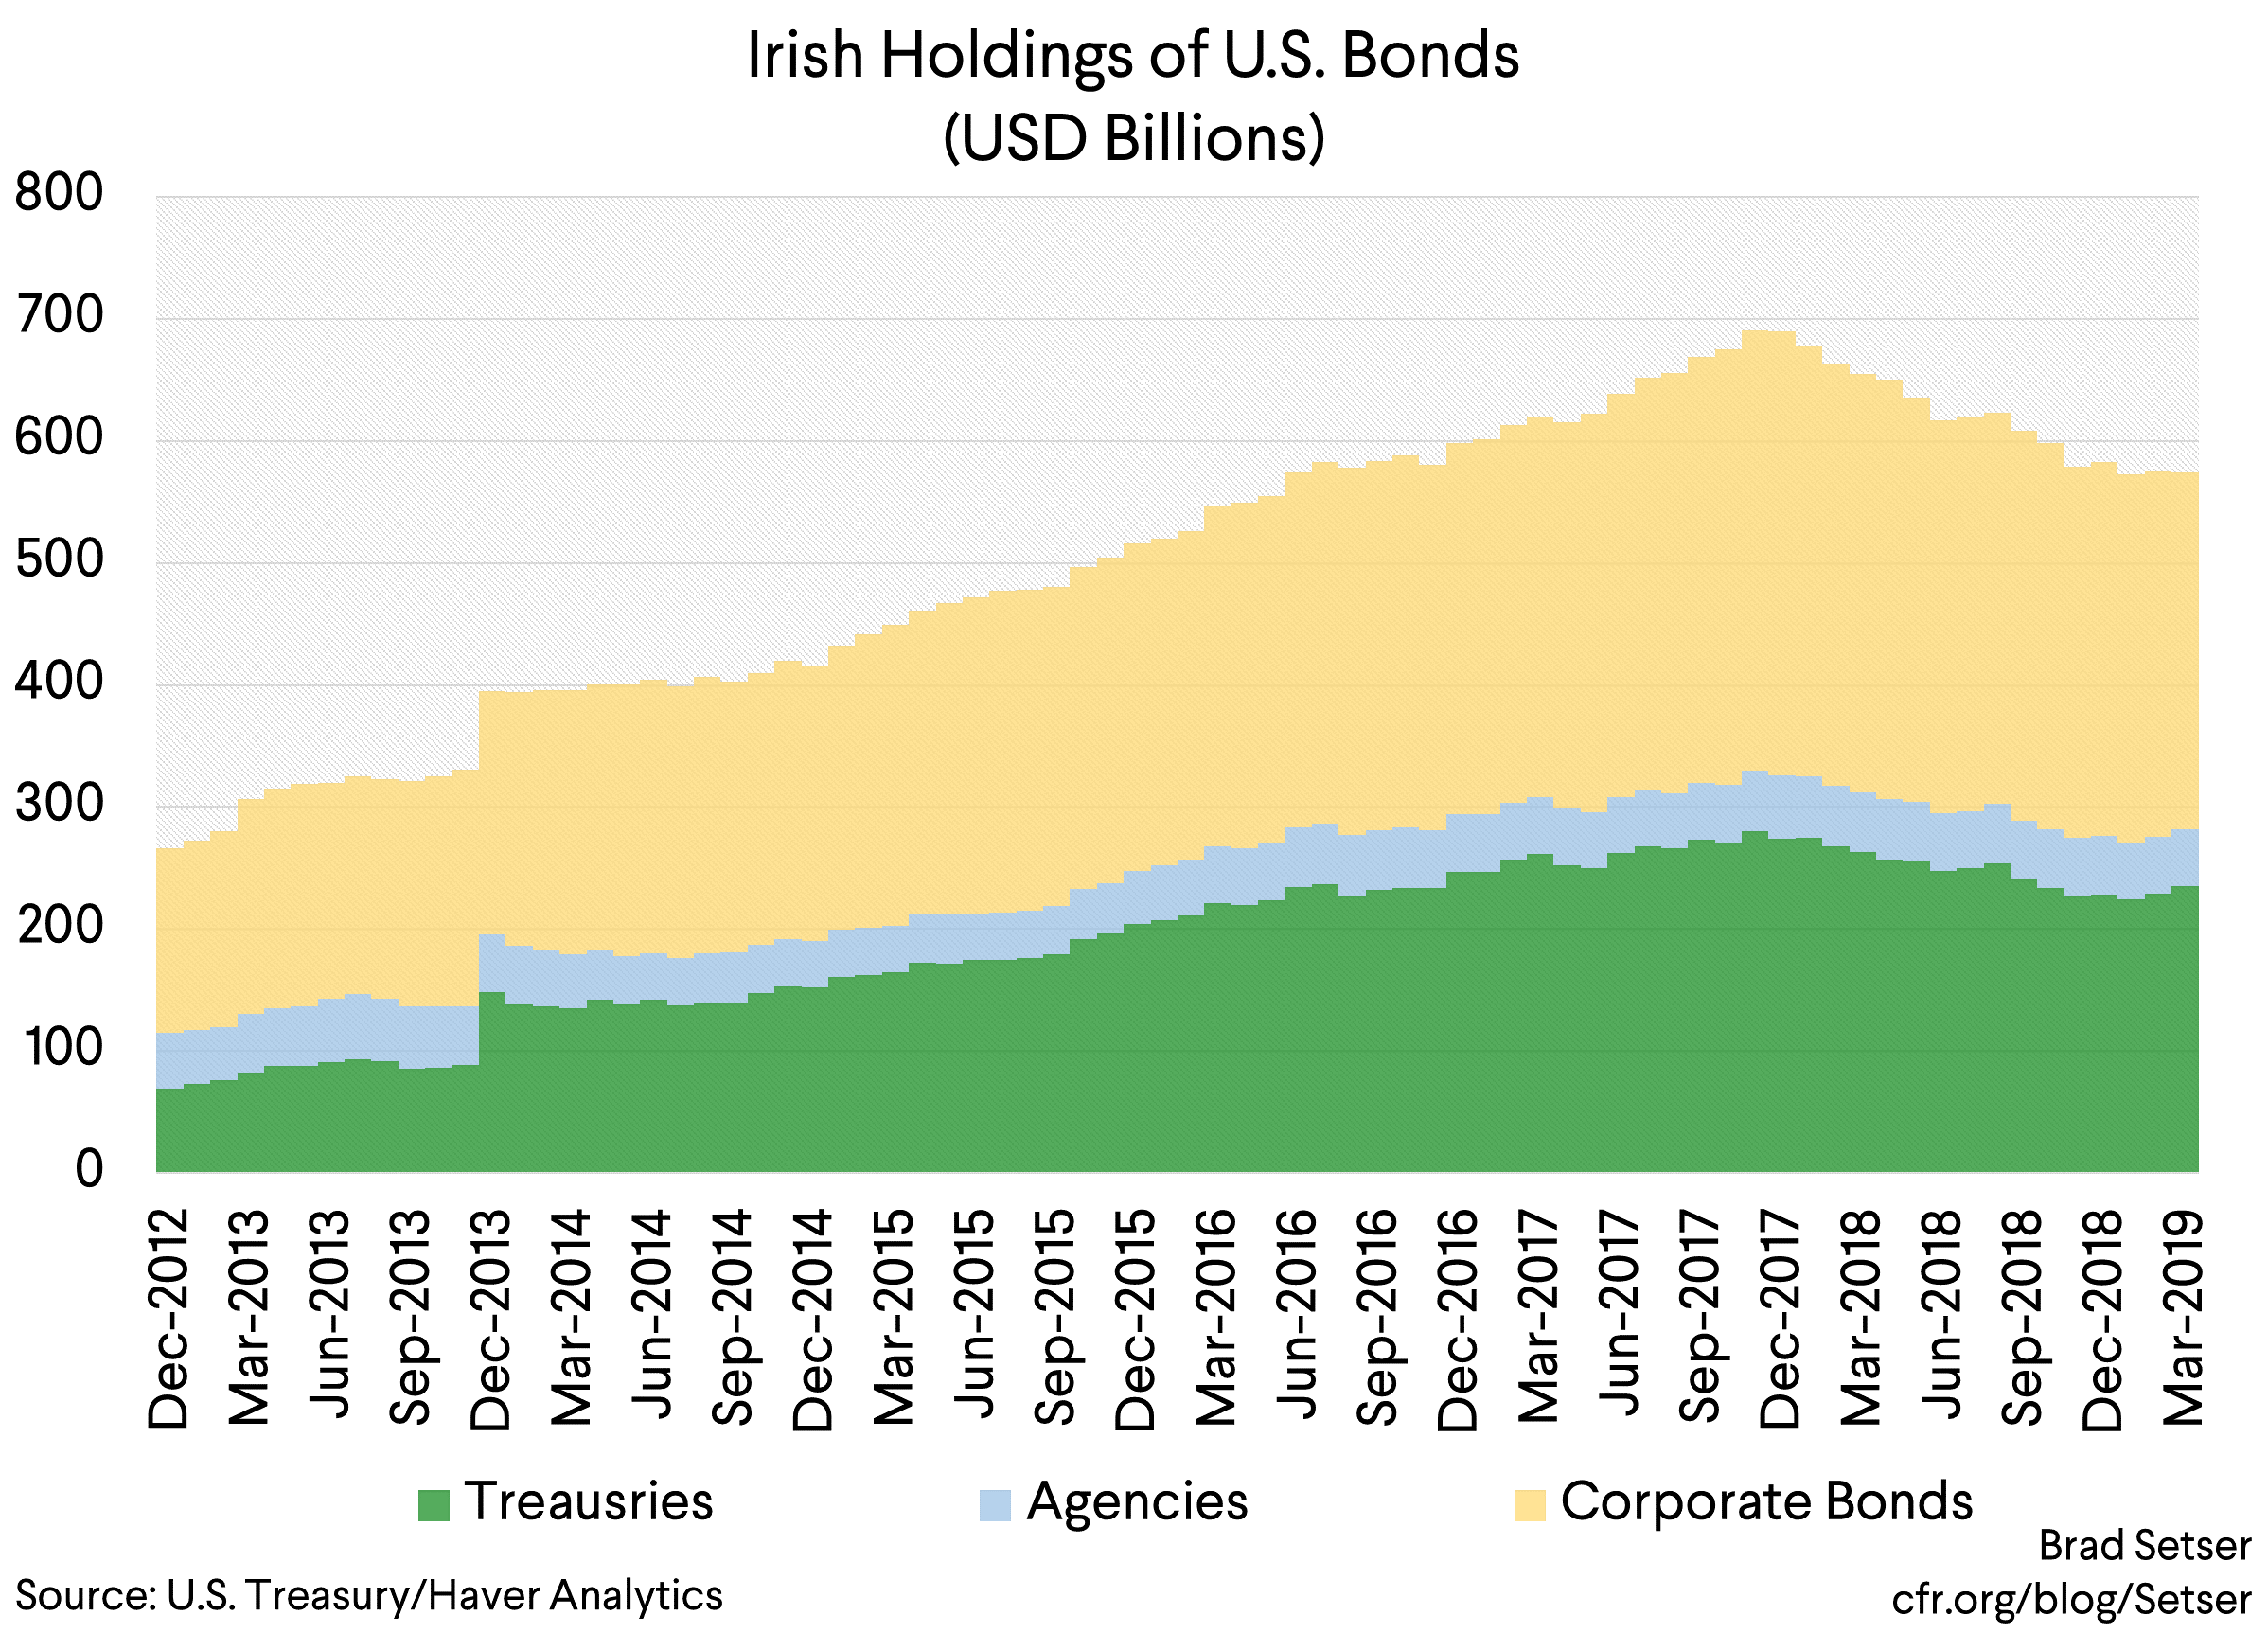 Finding Ireland in the U.S. Balance of Payments Data ...